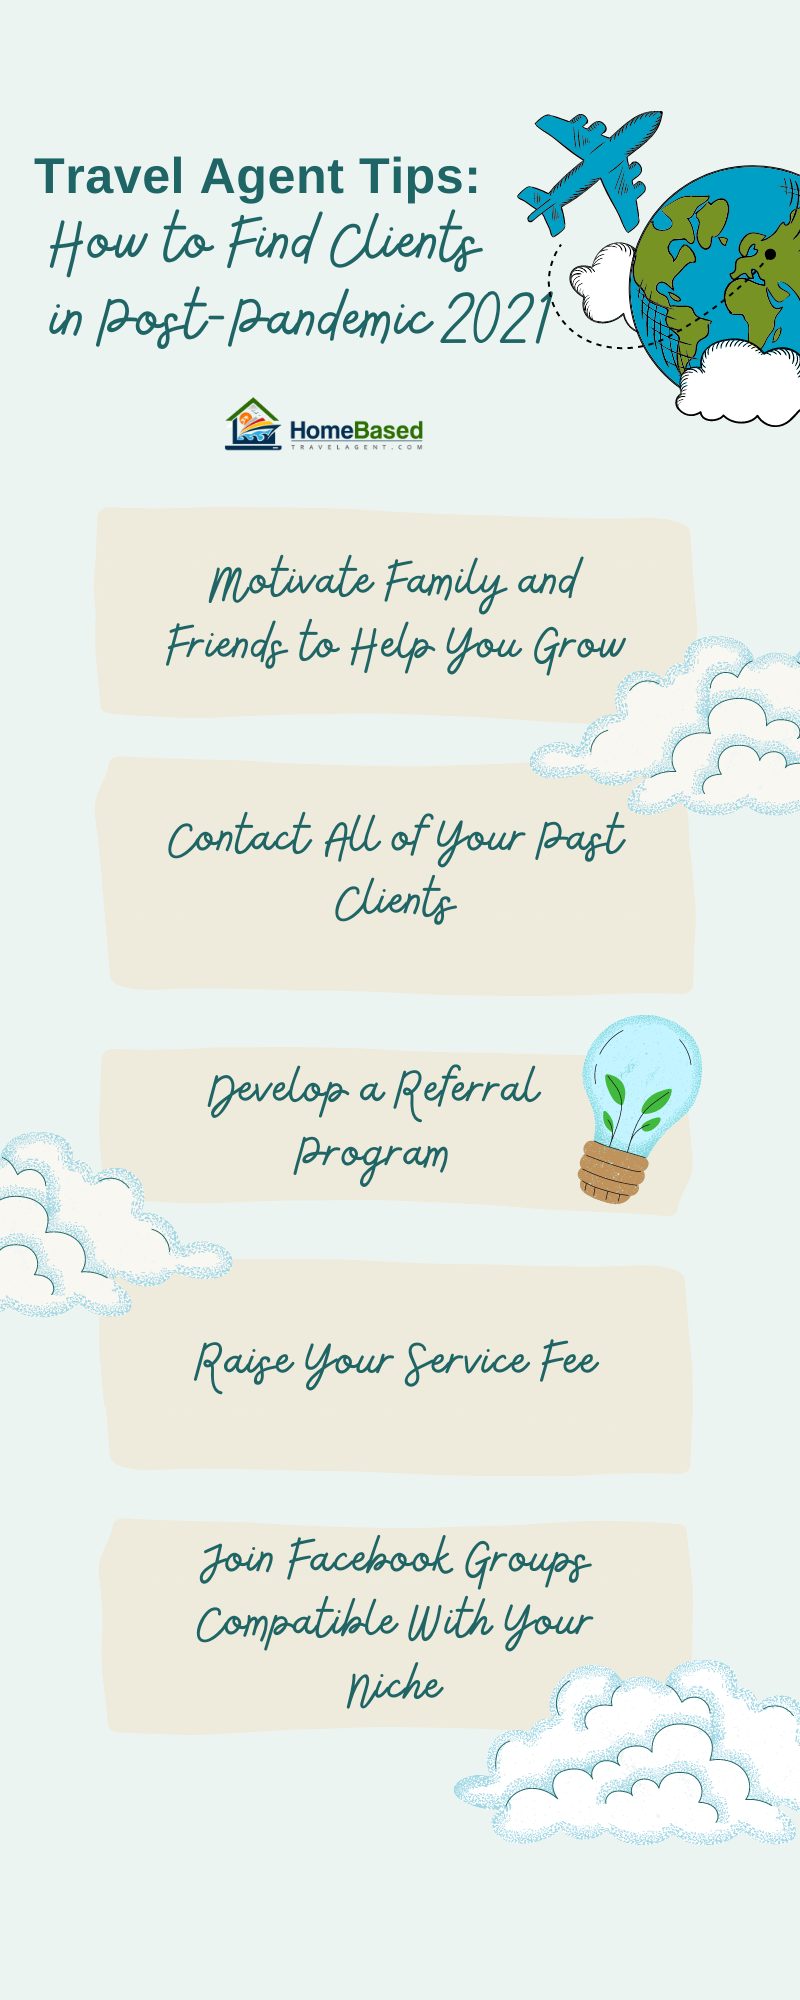 How to Find Clients as a Travel Agent in 2021 - Infographic